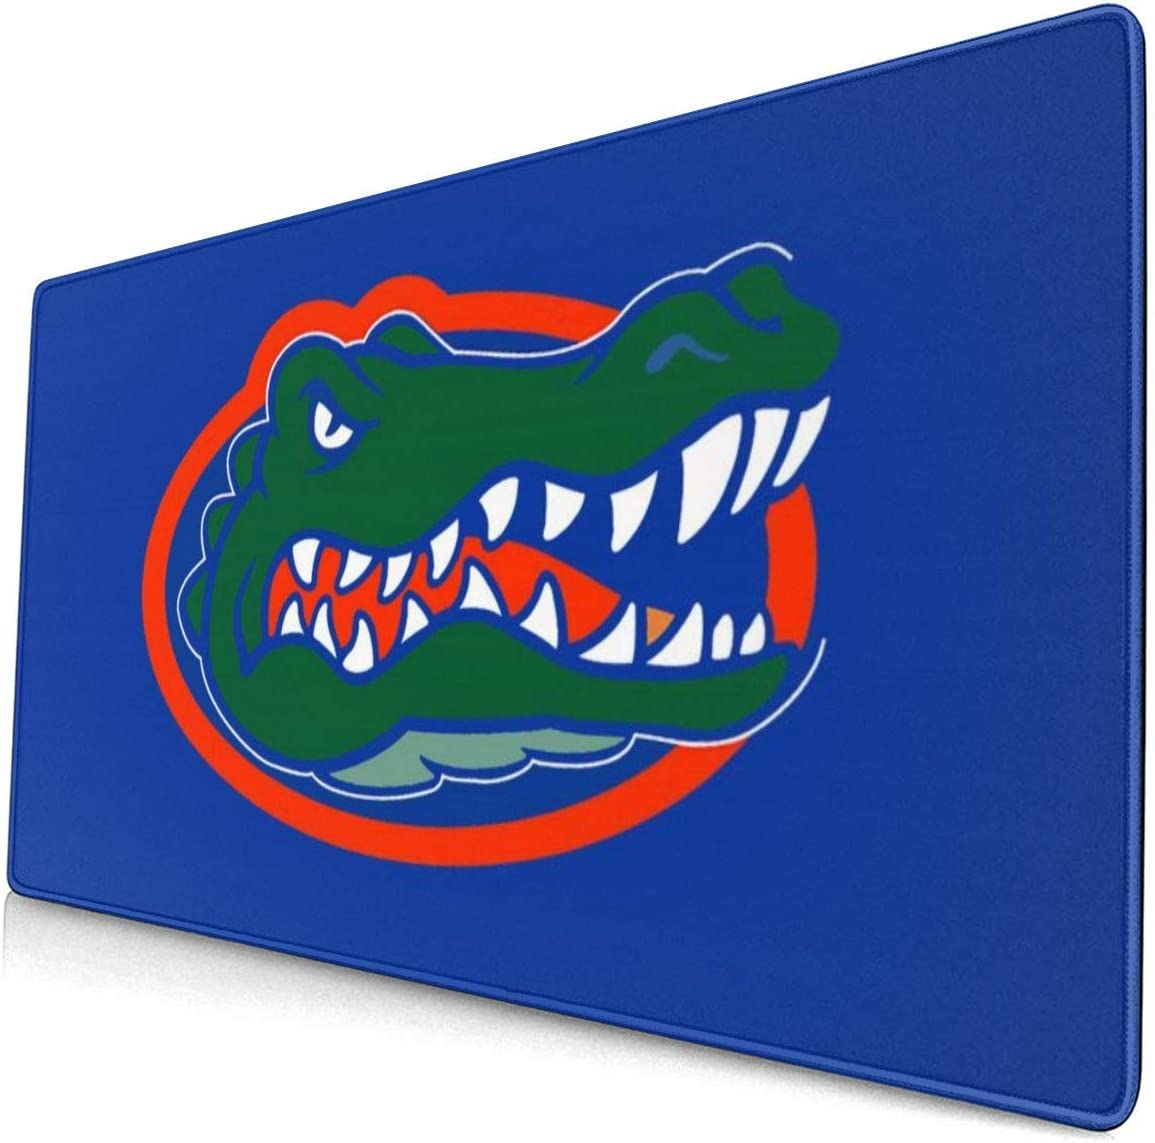 Gaming Mouse Pad Non-Slip Rubber Mouse Pad For16x30 in Florida Gators